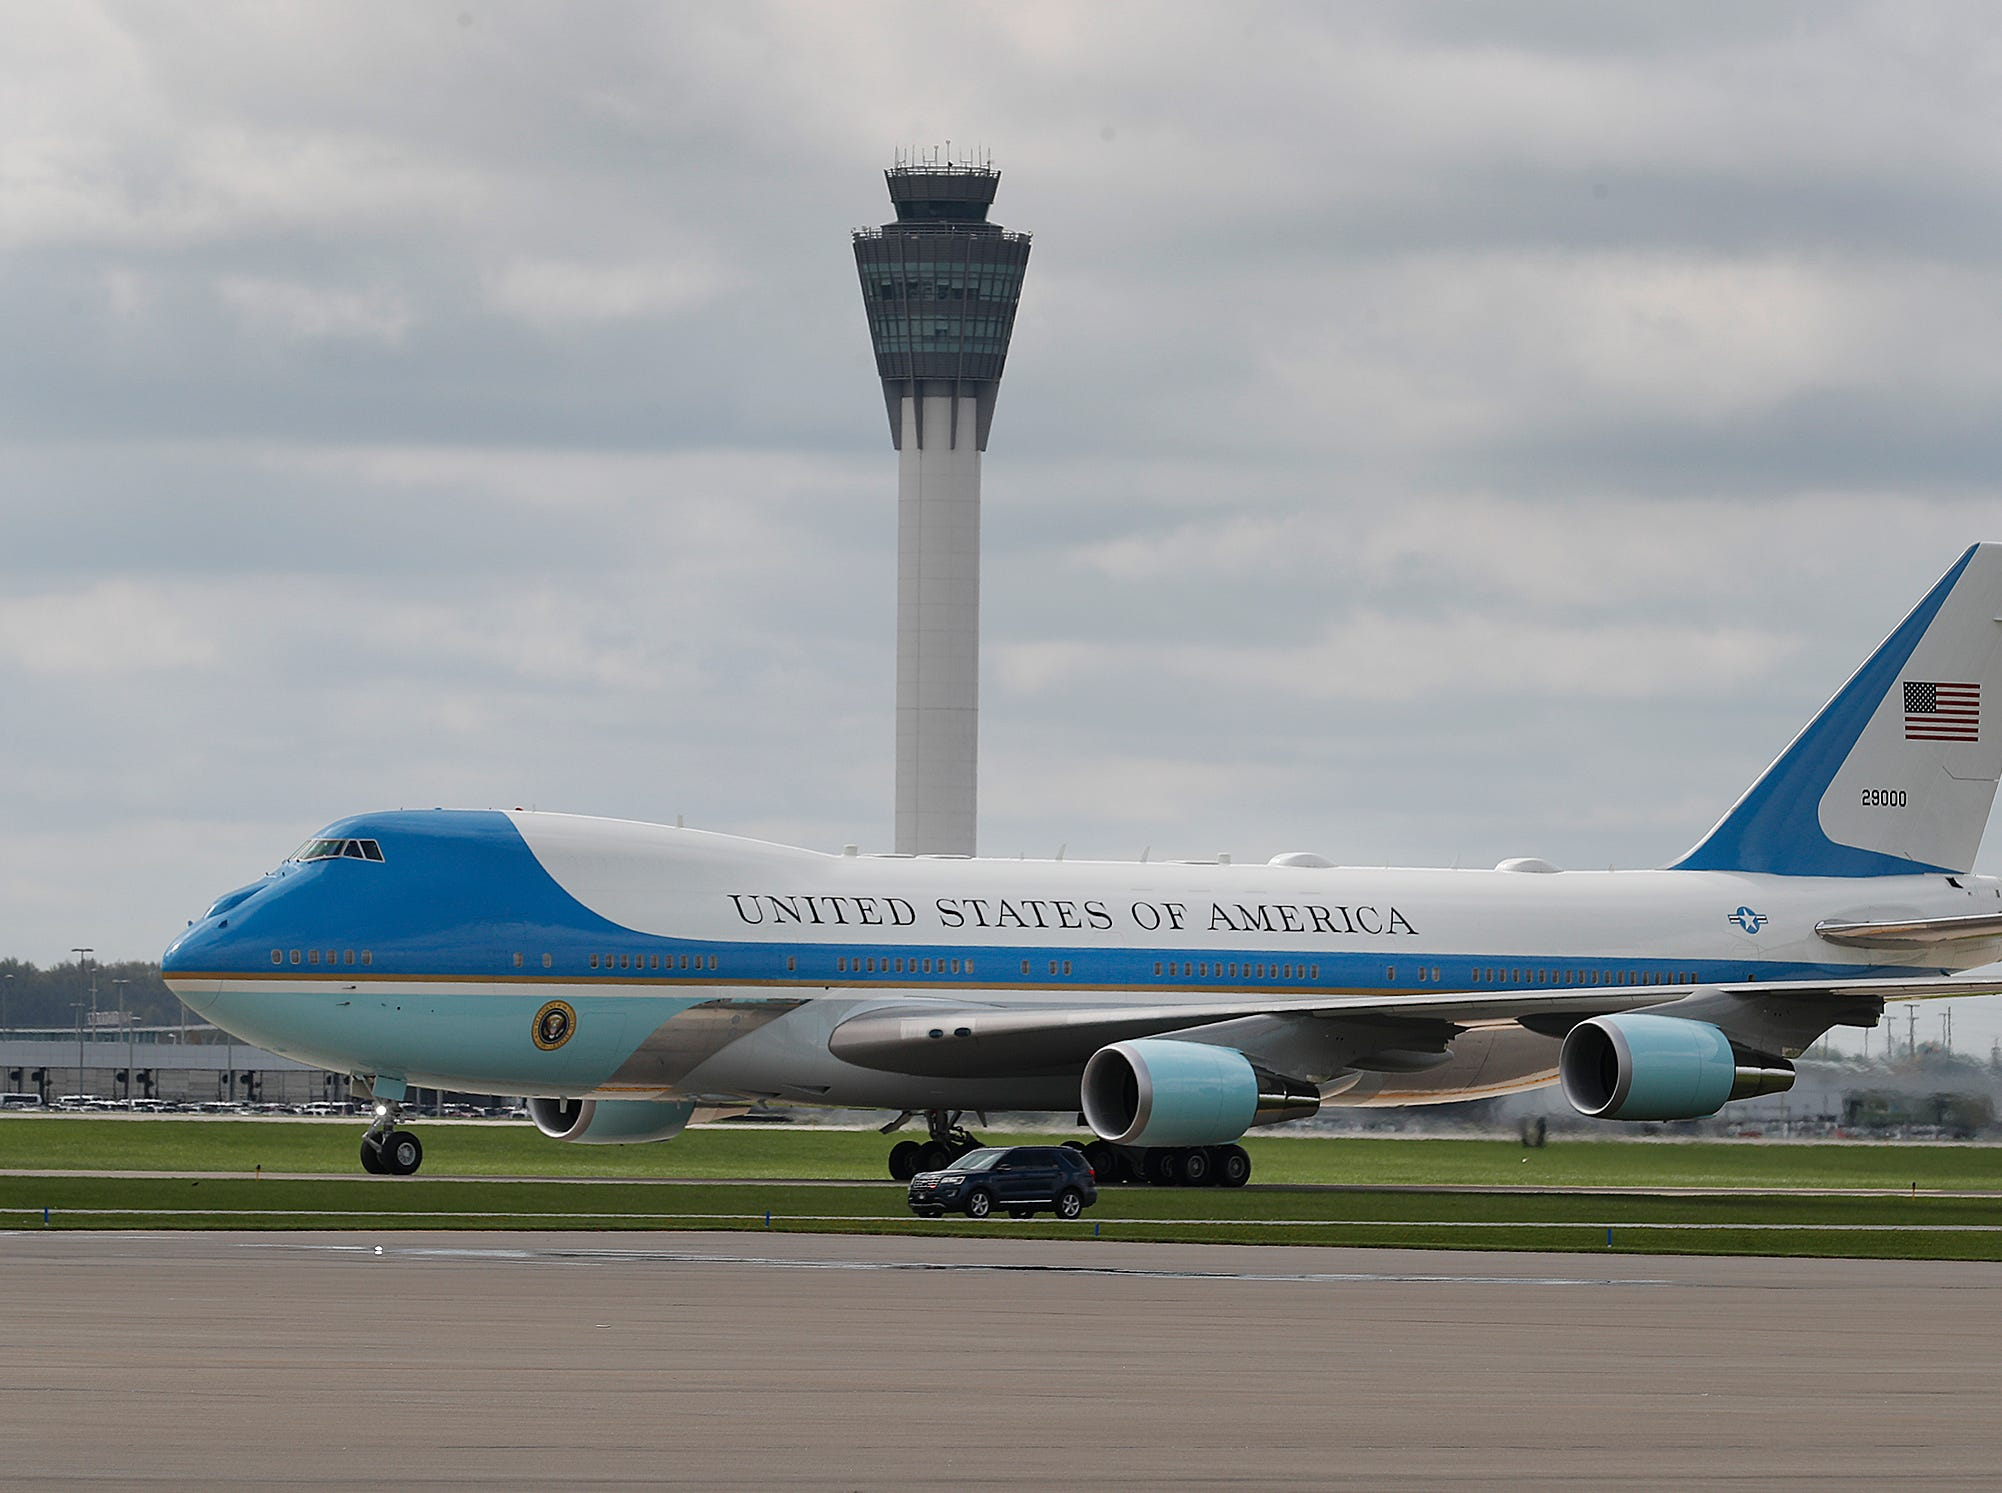 Air Force One with President Donald Trump arrives at the Indianapolis International Airport. Trump and VP Mike Pence spoke at the NRA-ILA Leadership Forum at Lucas Oil Stadium on Friday, April 26, 2019.